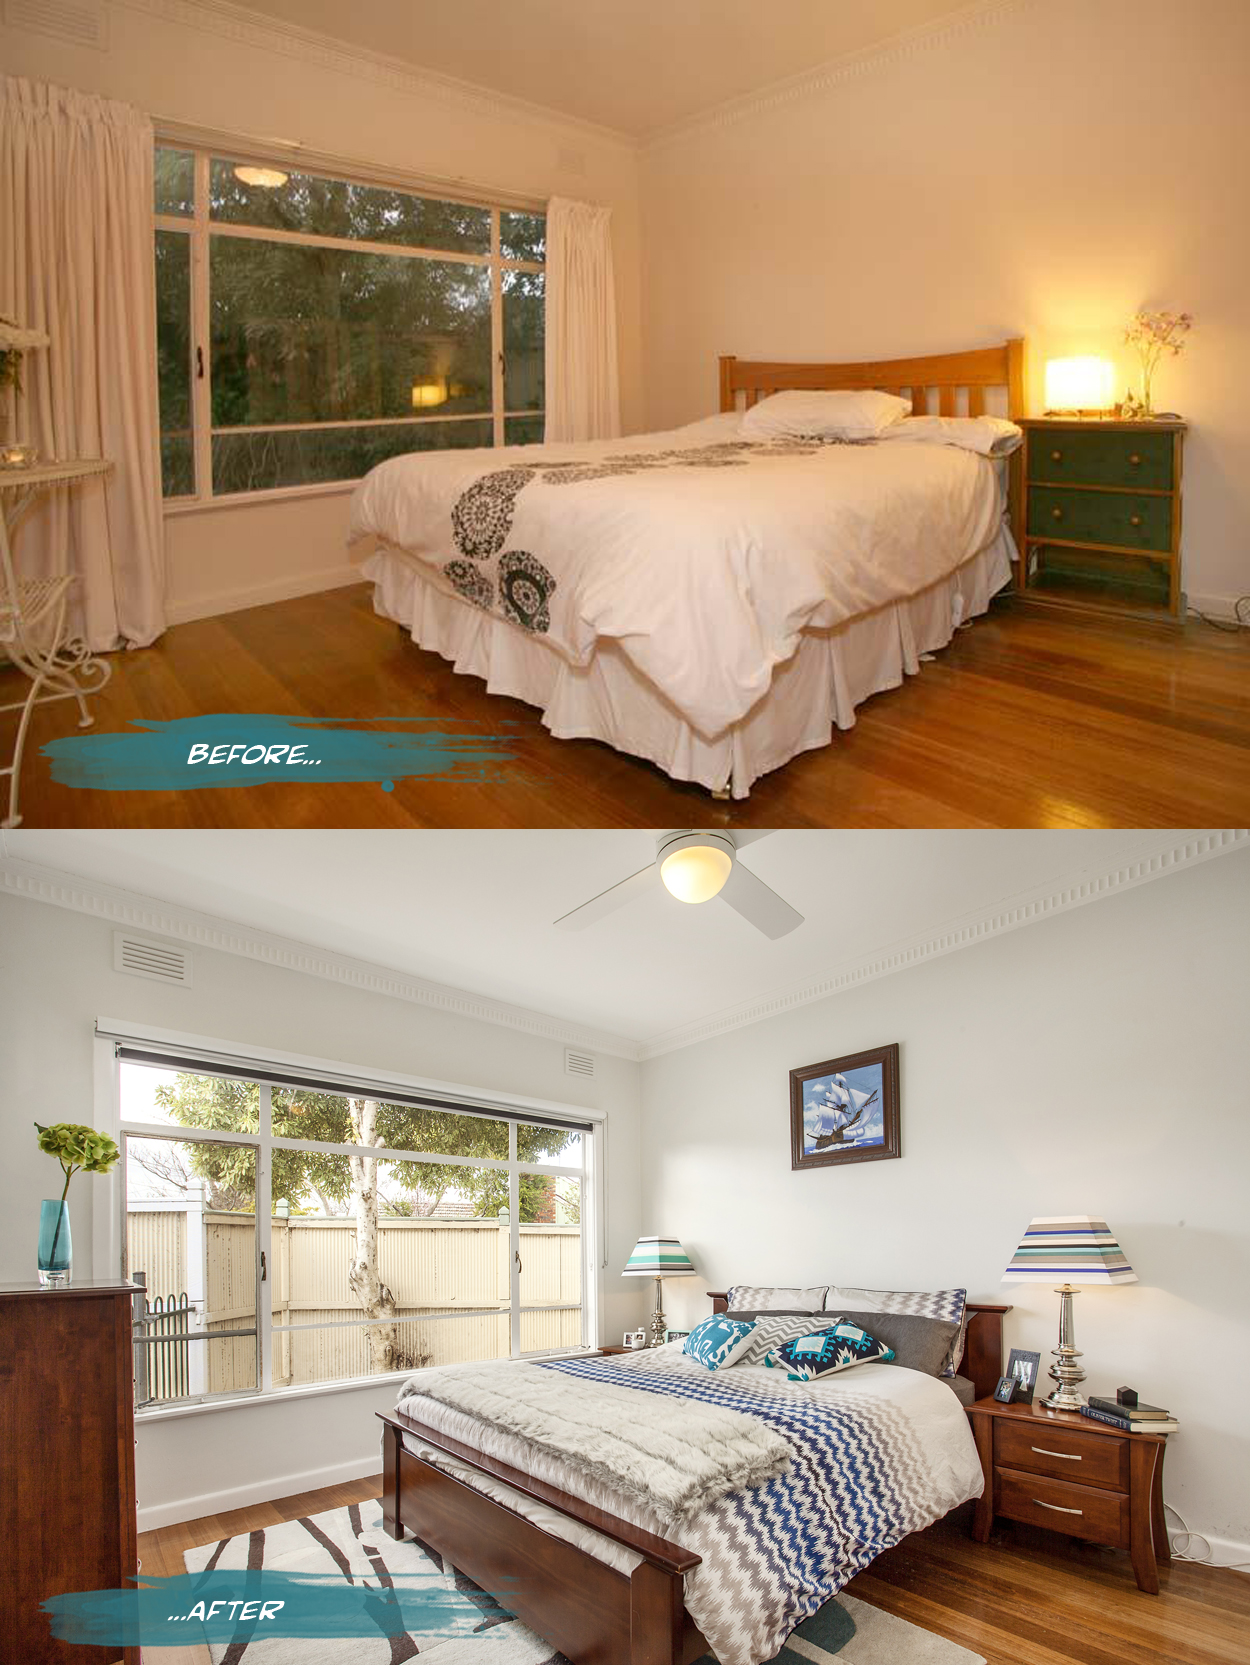 Bedroom Renovation Before And After Renovation  The Rsd Blog  Architecture Interiors & Australian Design